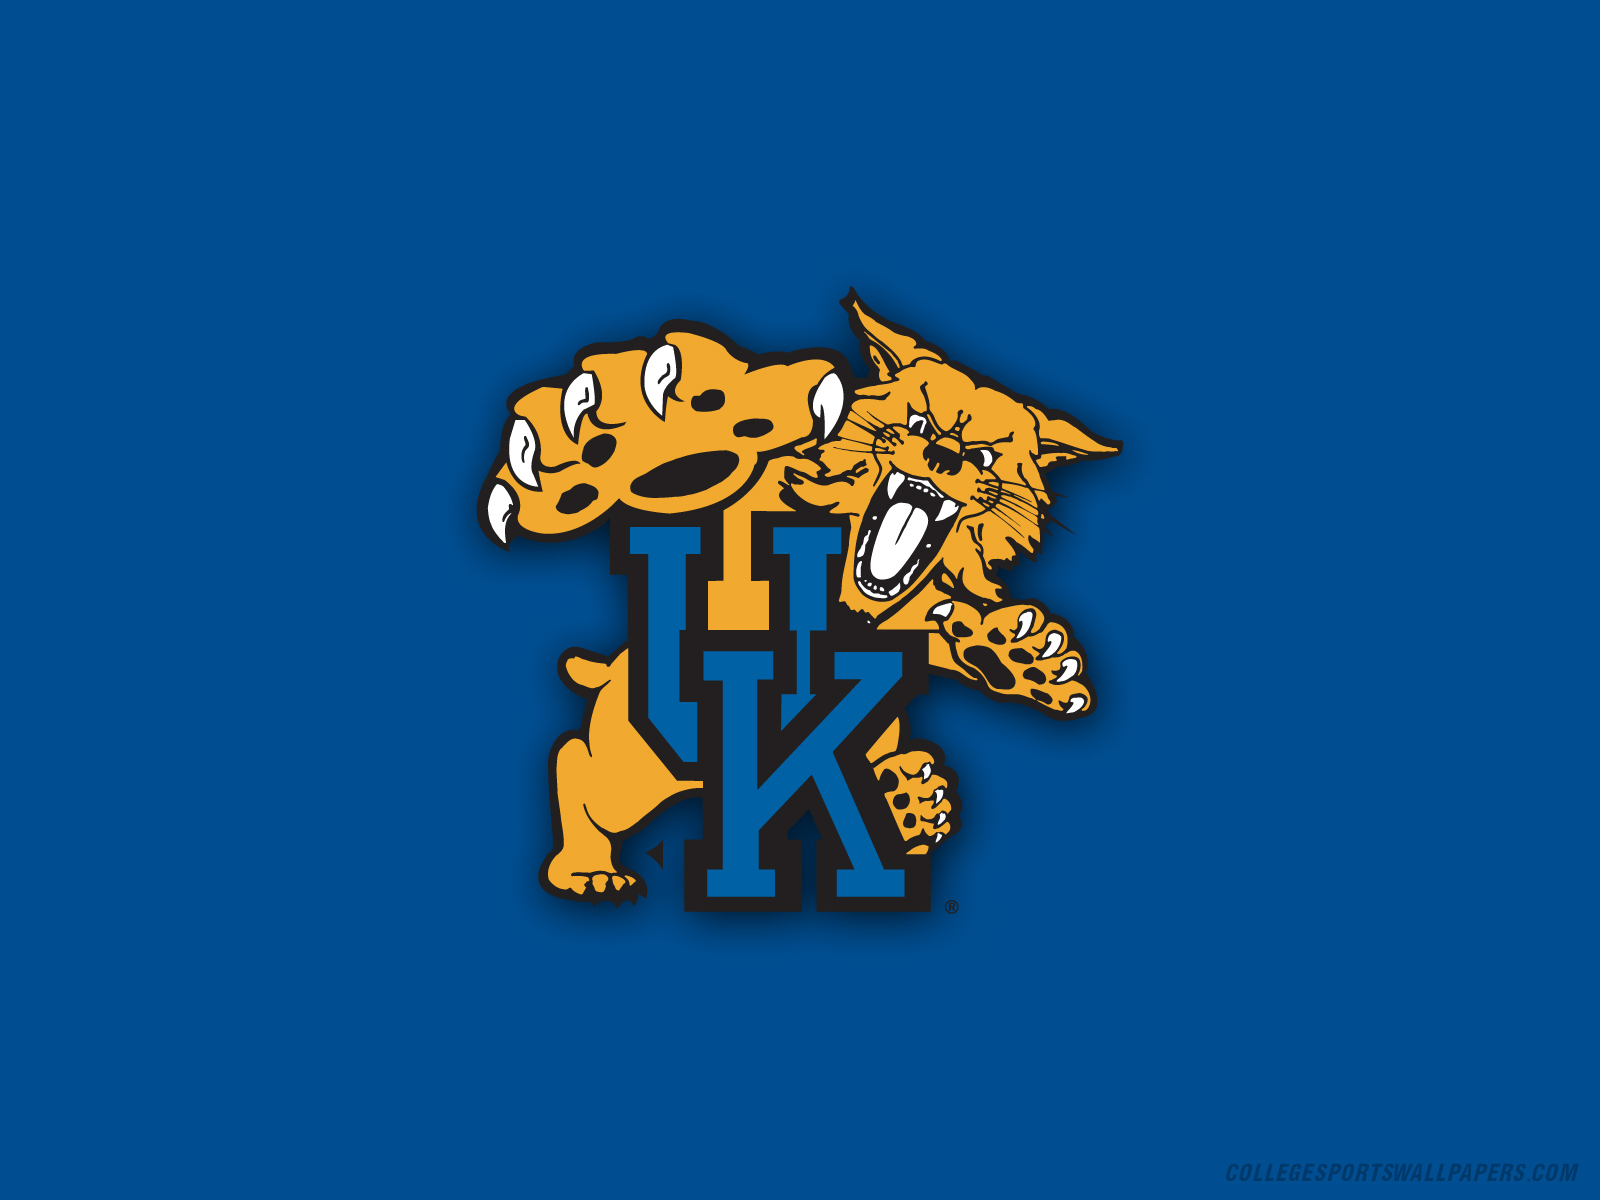 Kentucky Wildcats Uk logo 1600x1200